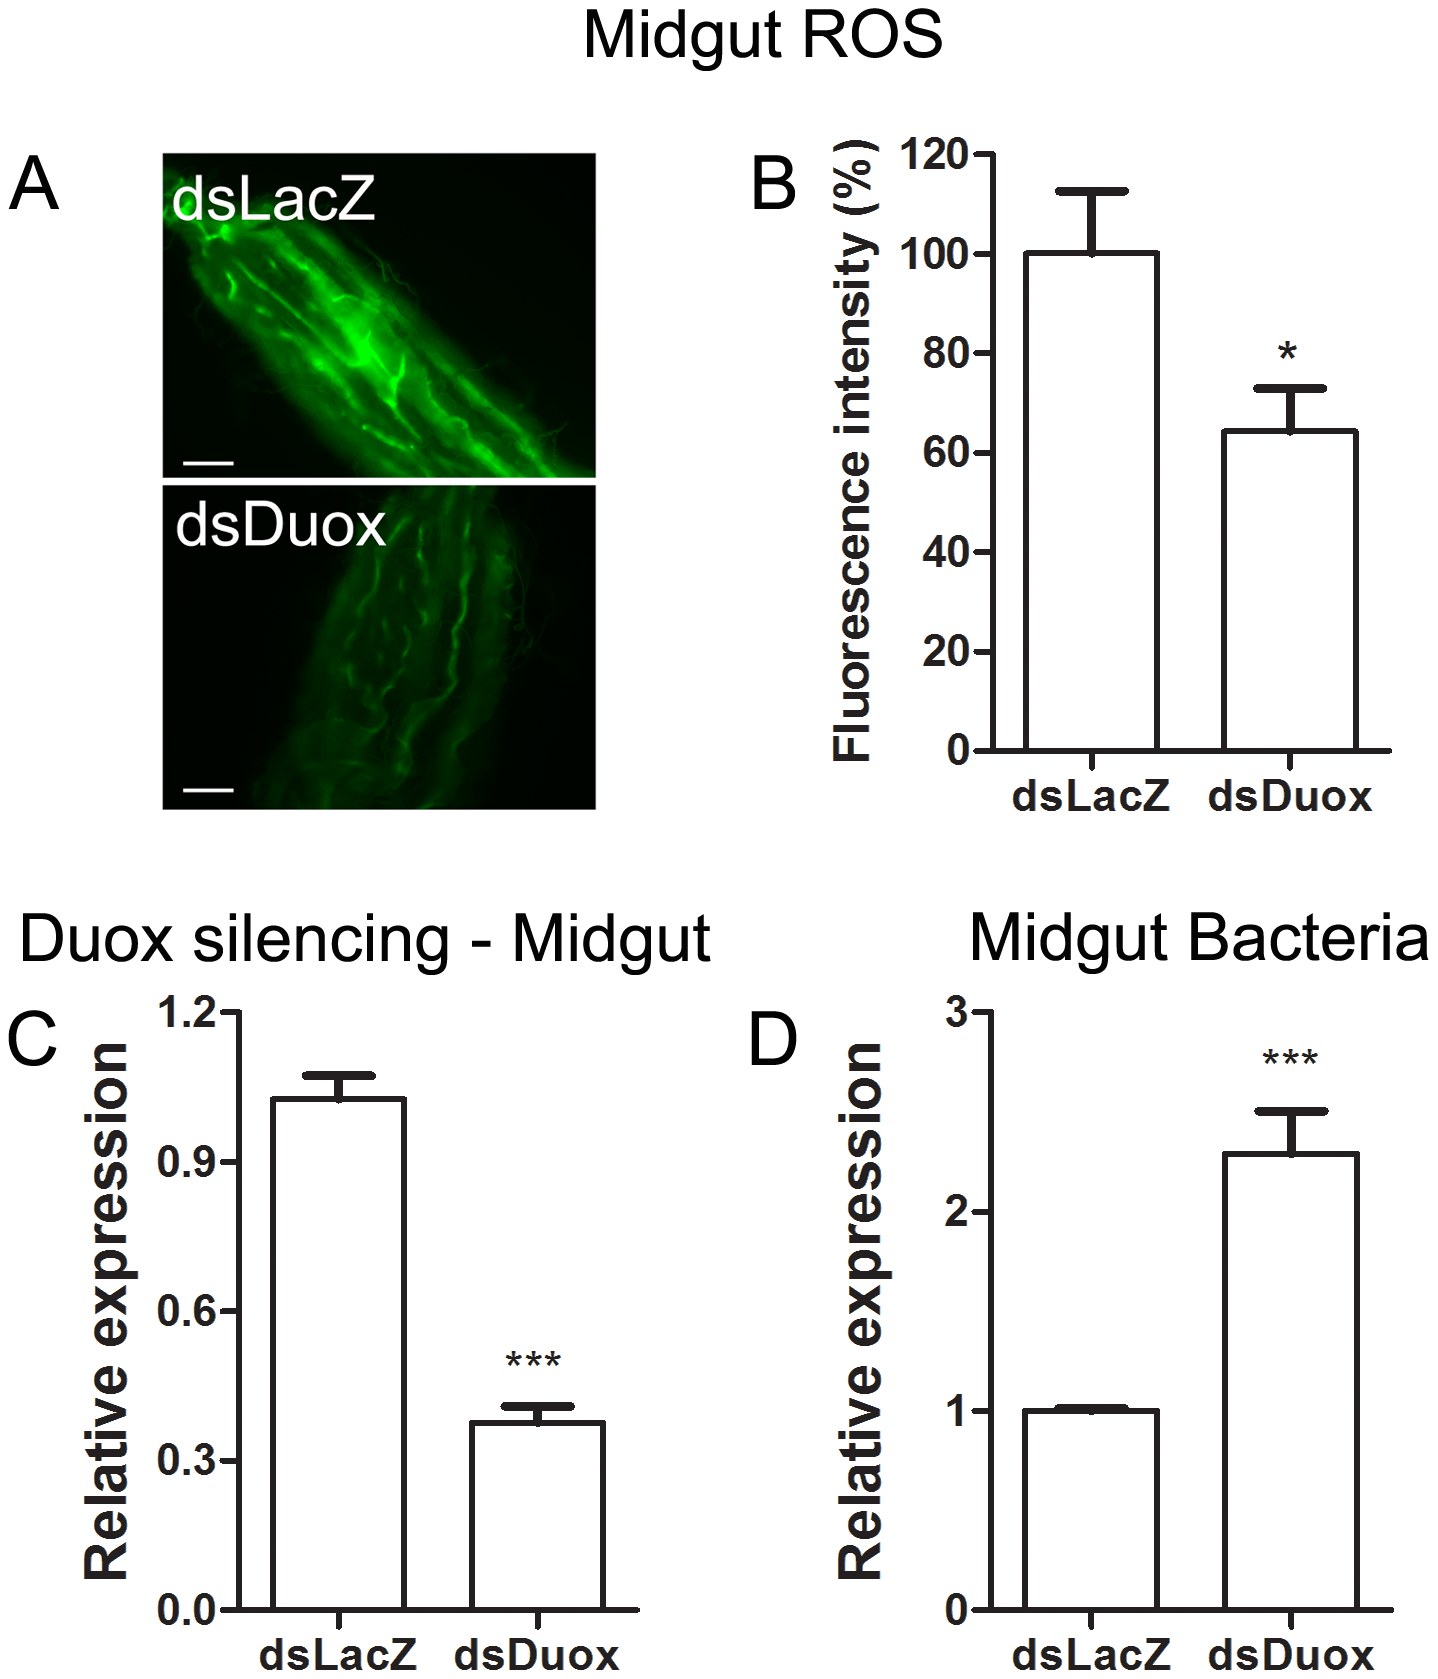 Duox silencing in the midgut reduces ROS levels and allow proliferation of intestinal microbiota.